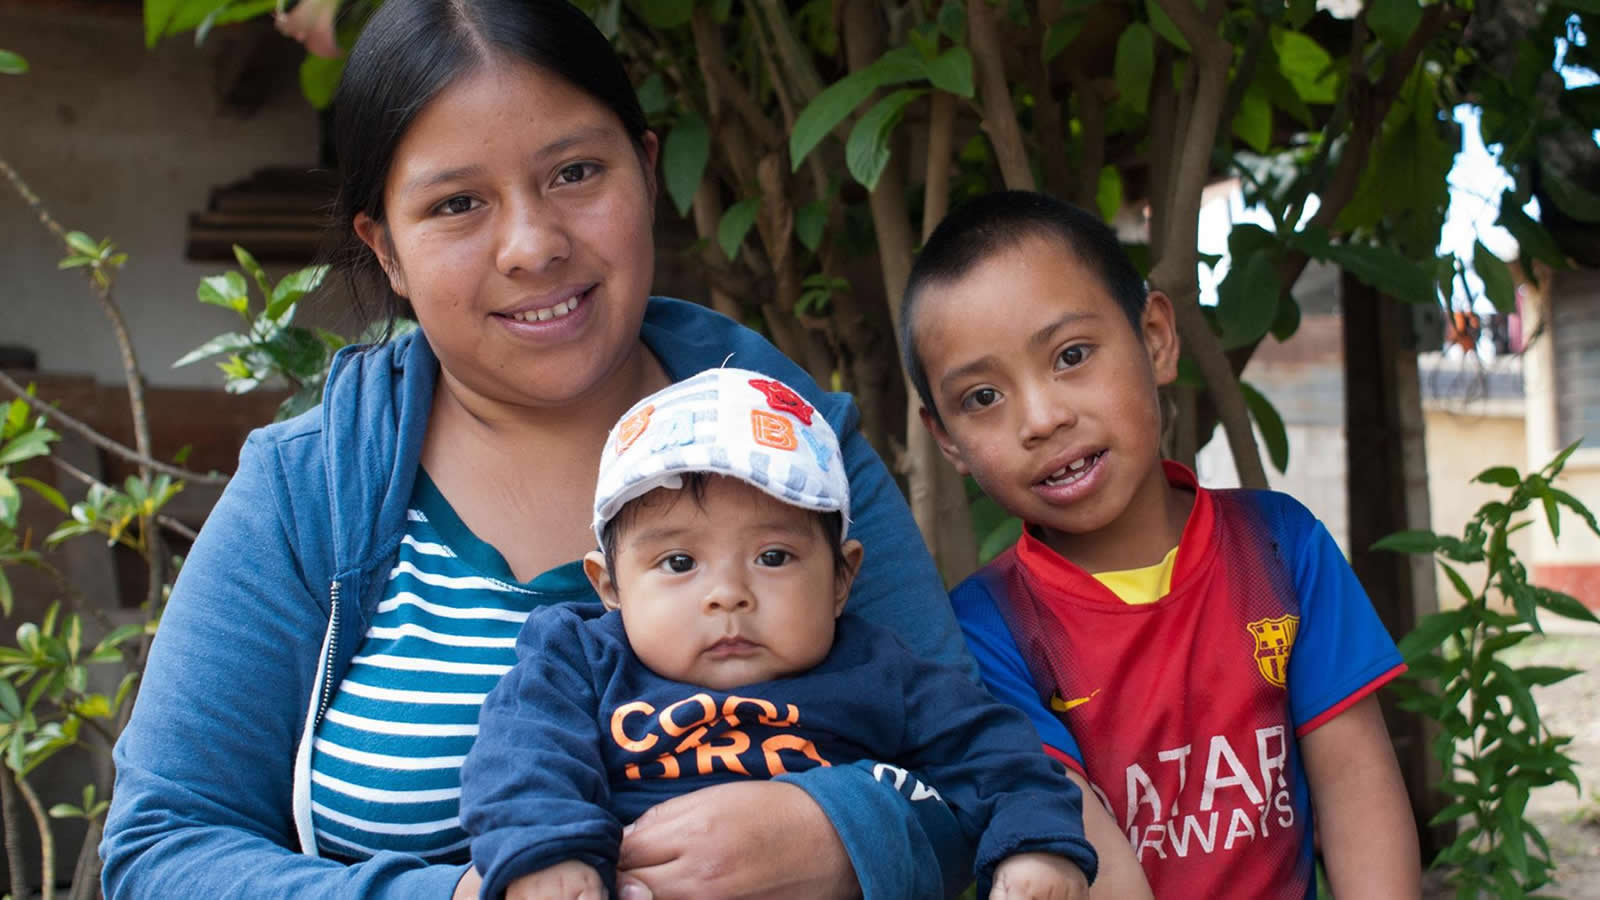 Woman with Two Children in Guatemala